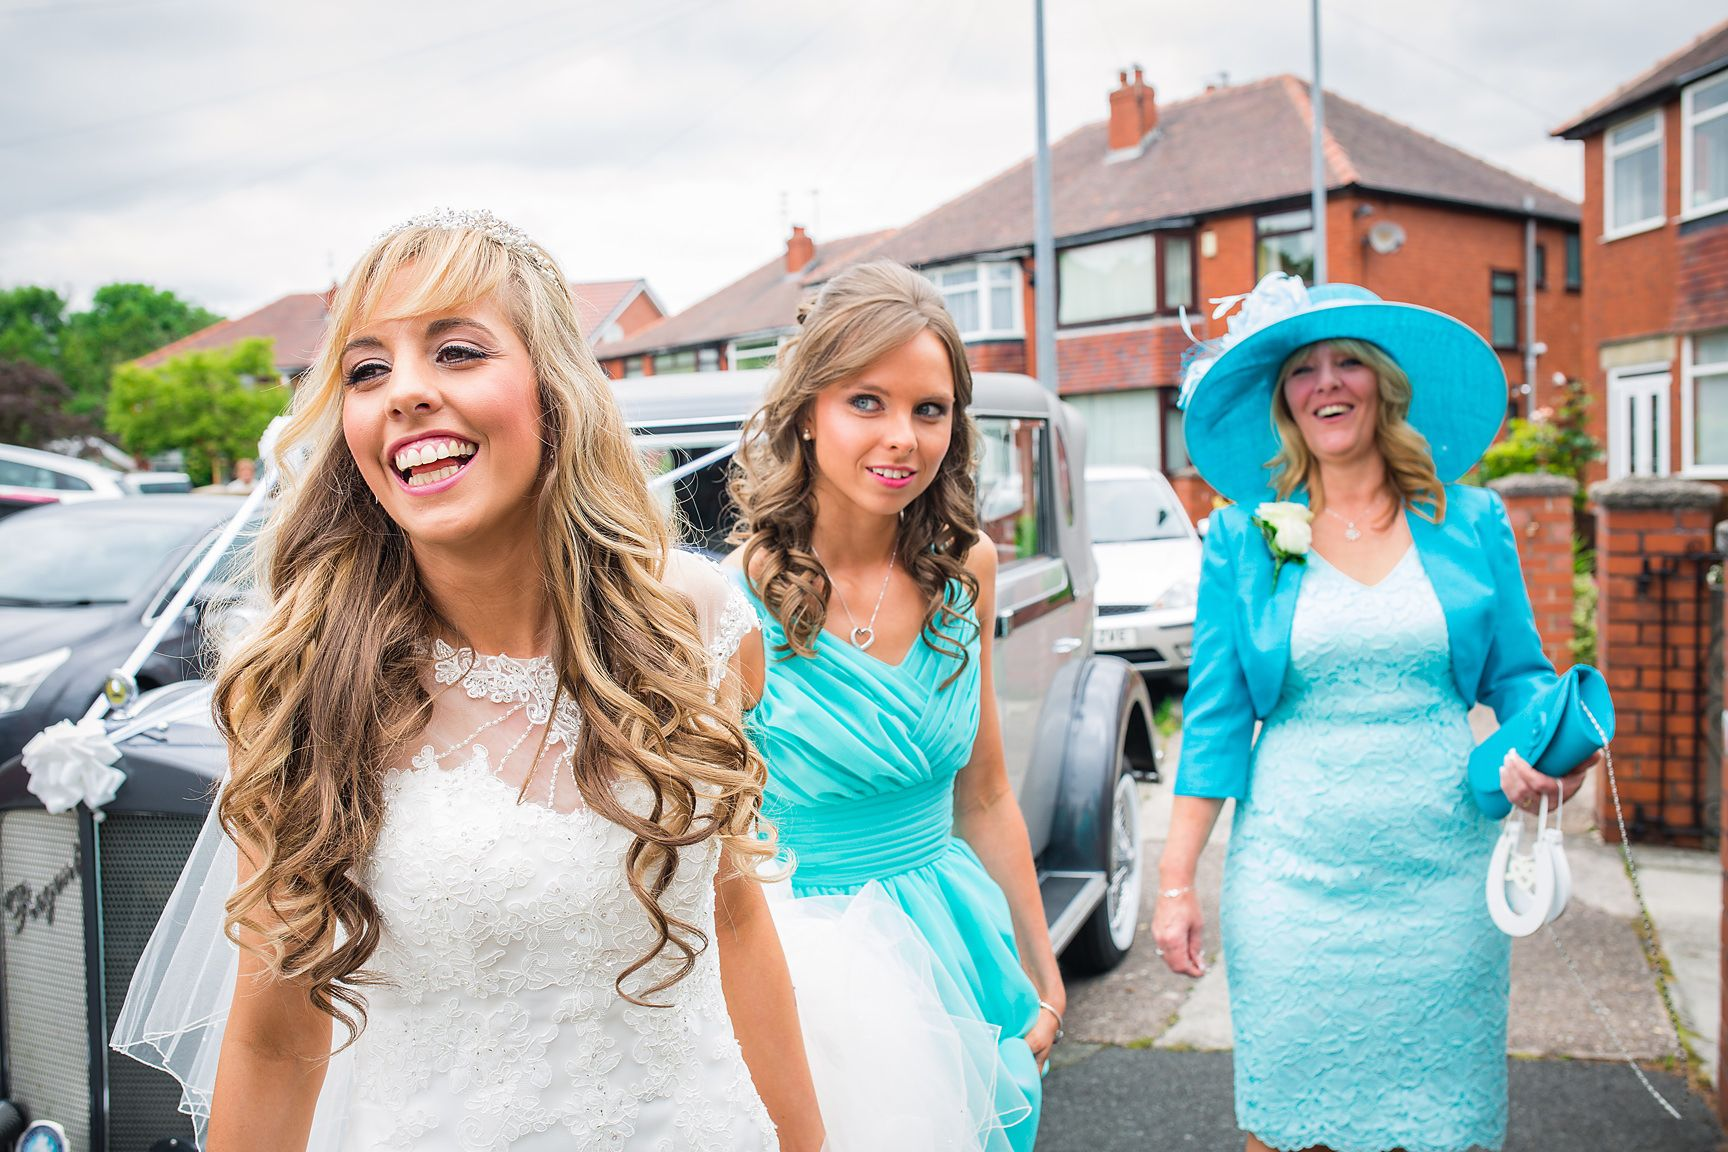 Smiling bride in white wedding dress is watched by her Mother and bridesmaid outside her house